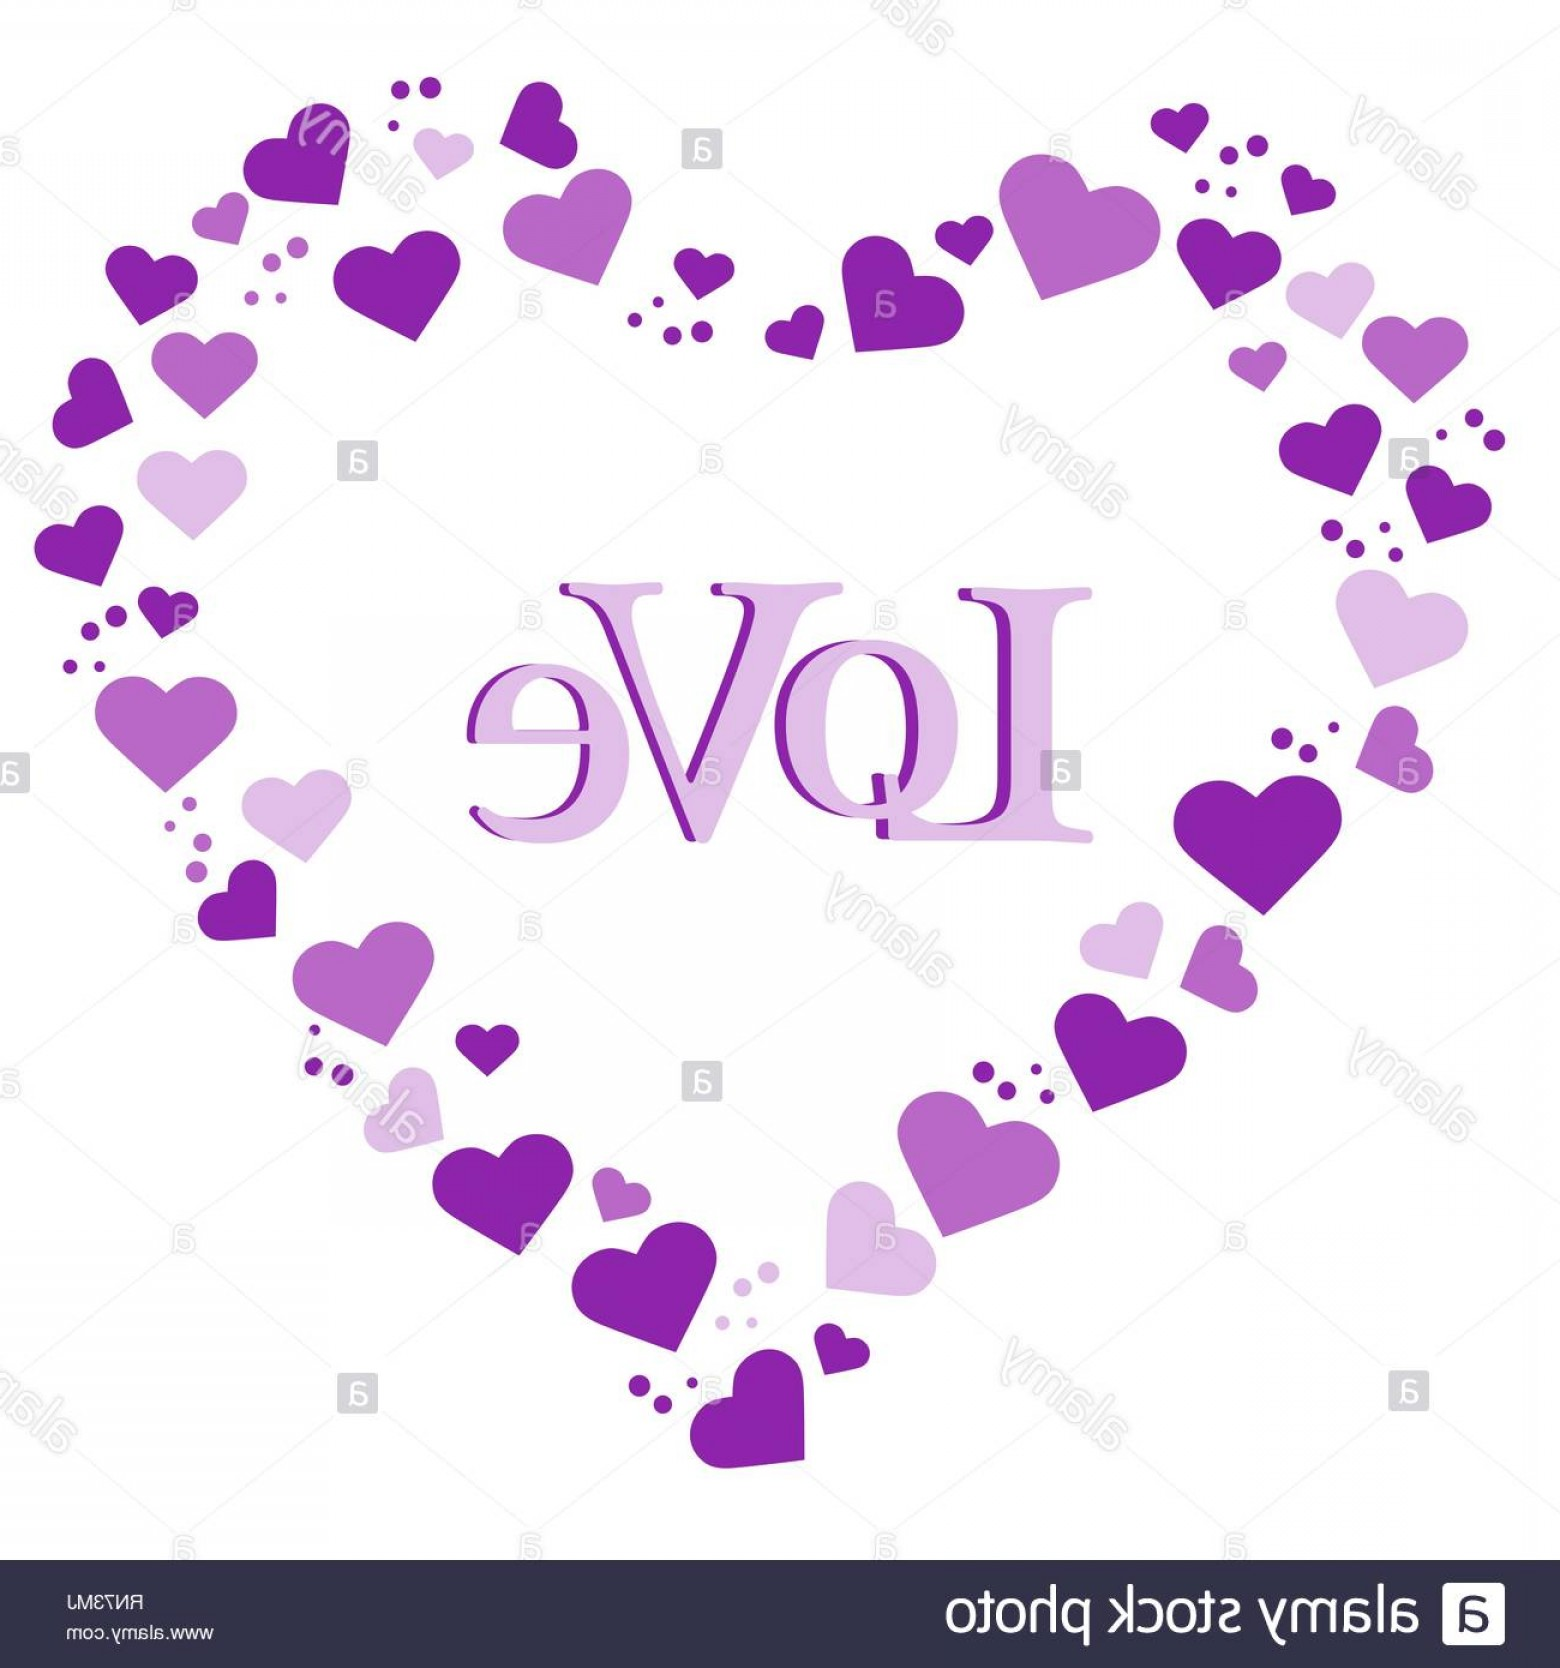 Love M J Vector: Vector Illustration With Heart Composed Of Many Hearts Inscription Love Design For Banner Poster Or Print Image